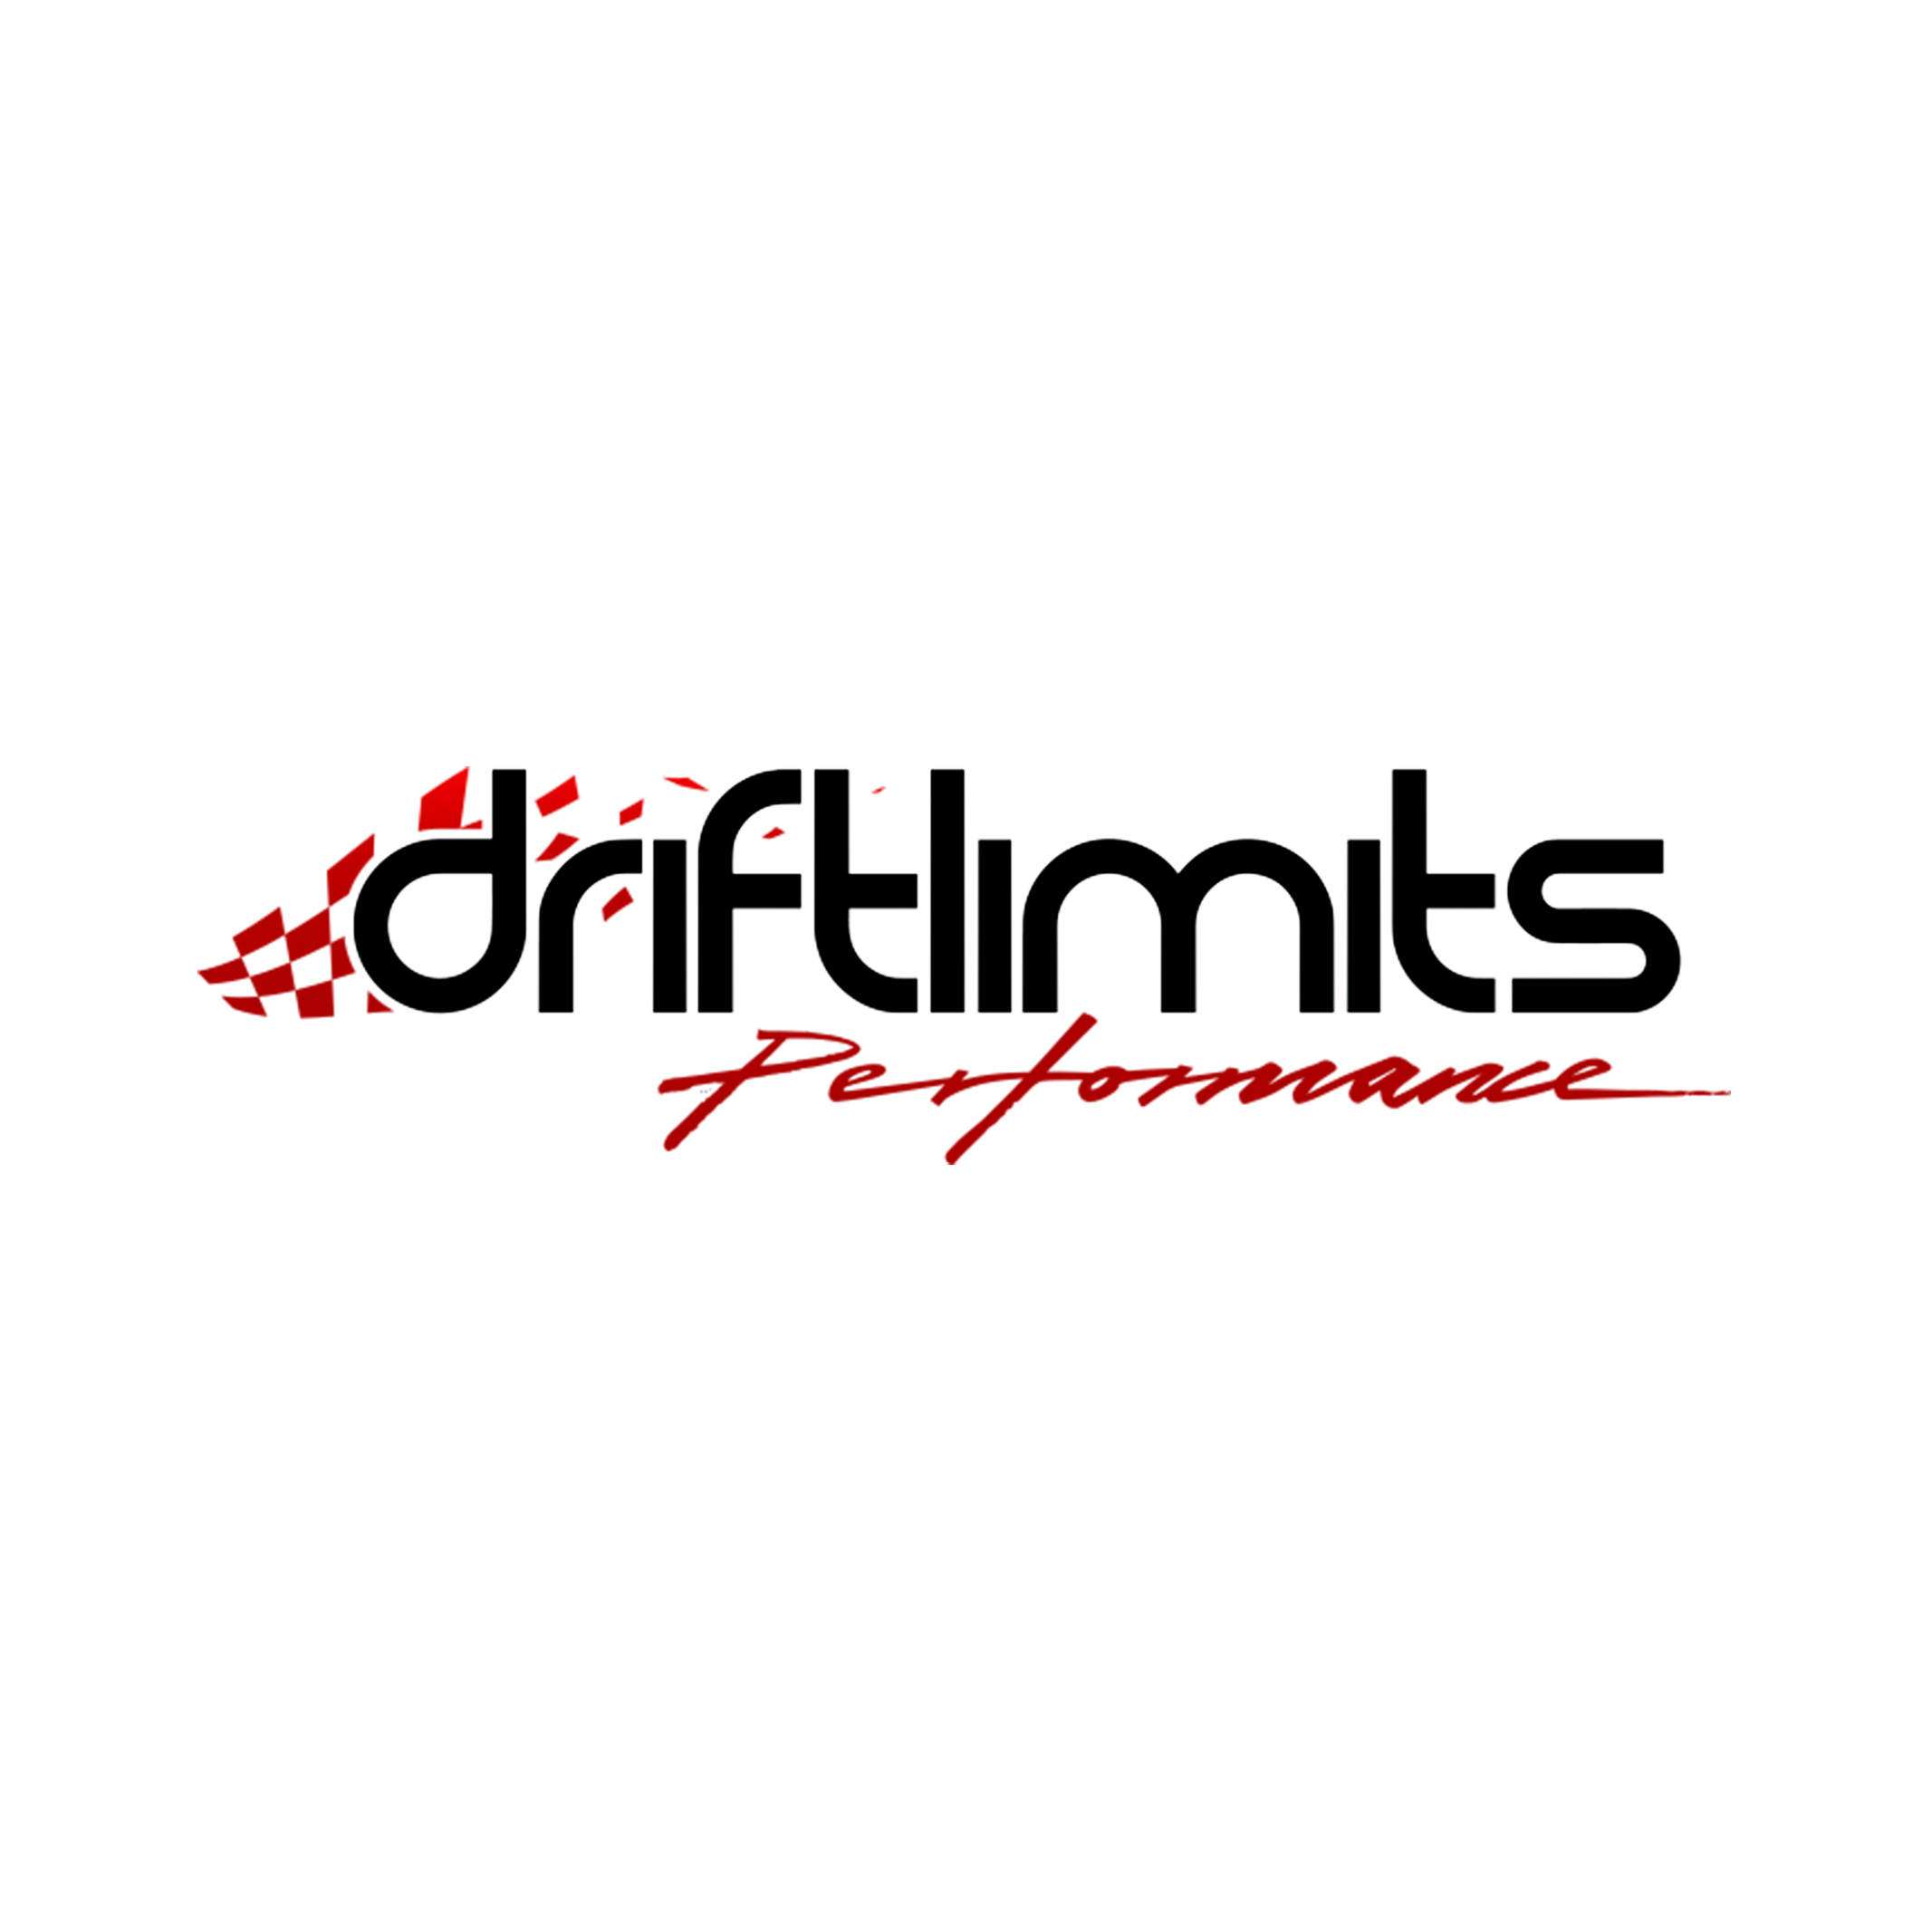 Drift Limits Performance